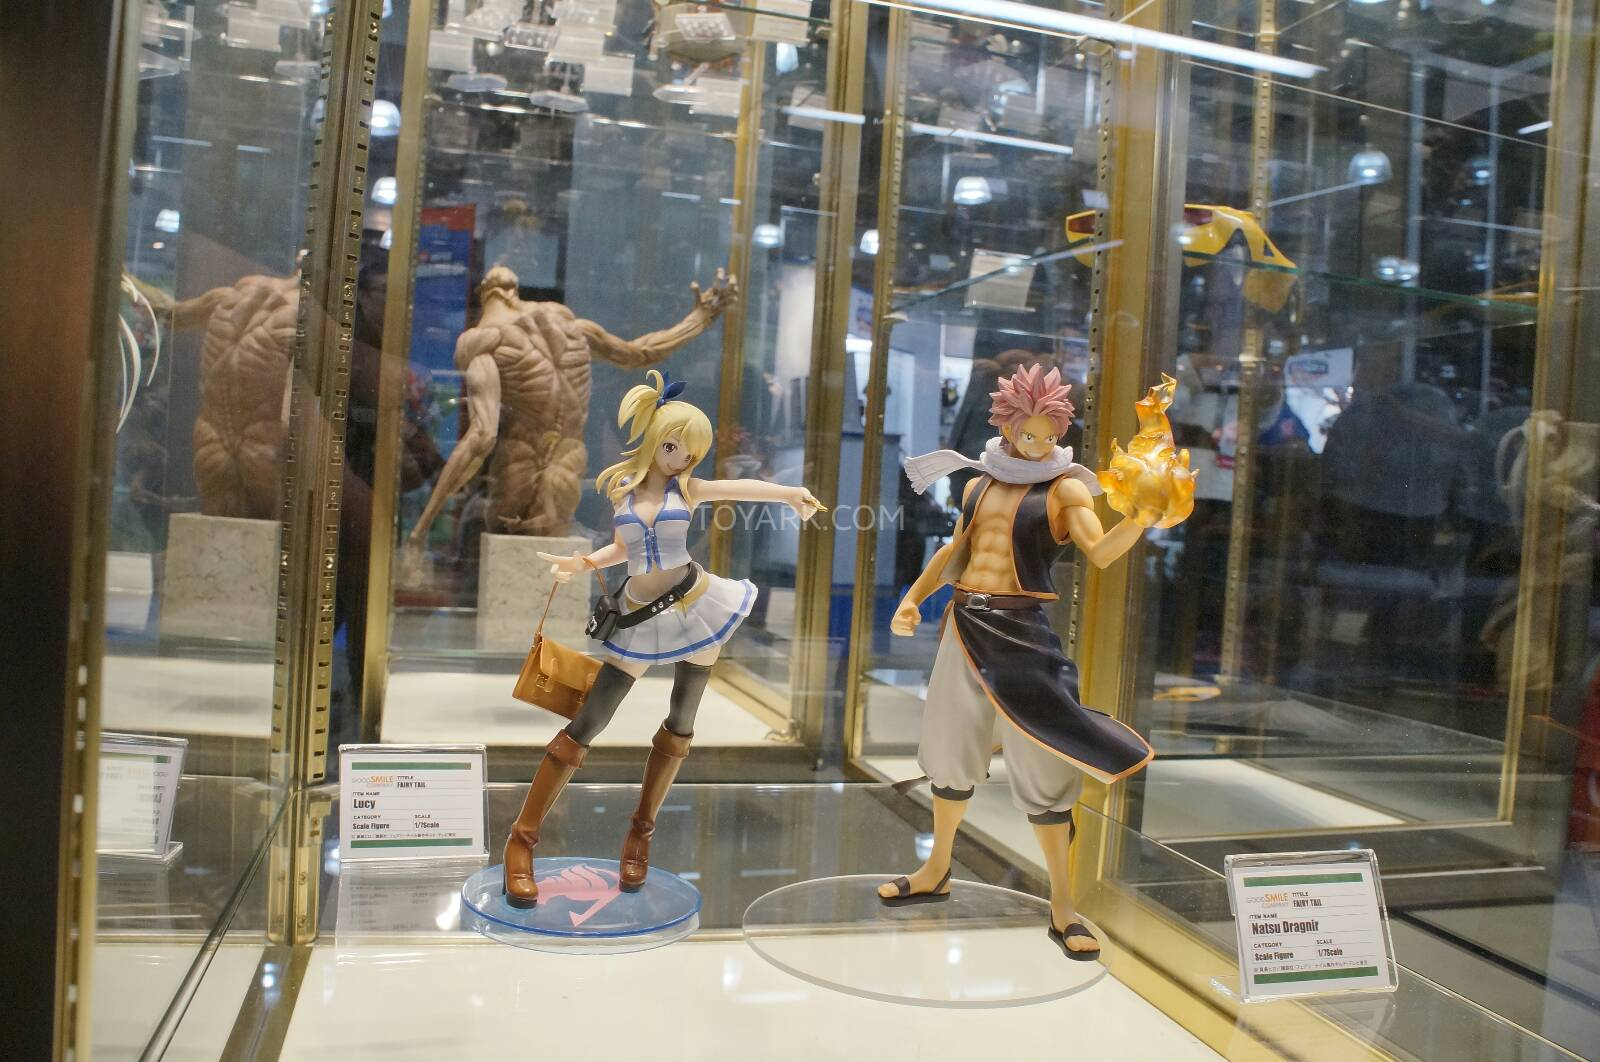 [EVENTO] Toy Fair 2014 - Good Smile Company / Max Factory / Phat Company / FREEing Toy-Fair-2014-Good-Smile-and-Max-Factory-Display-055